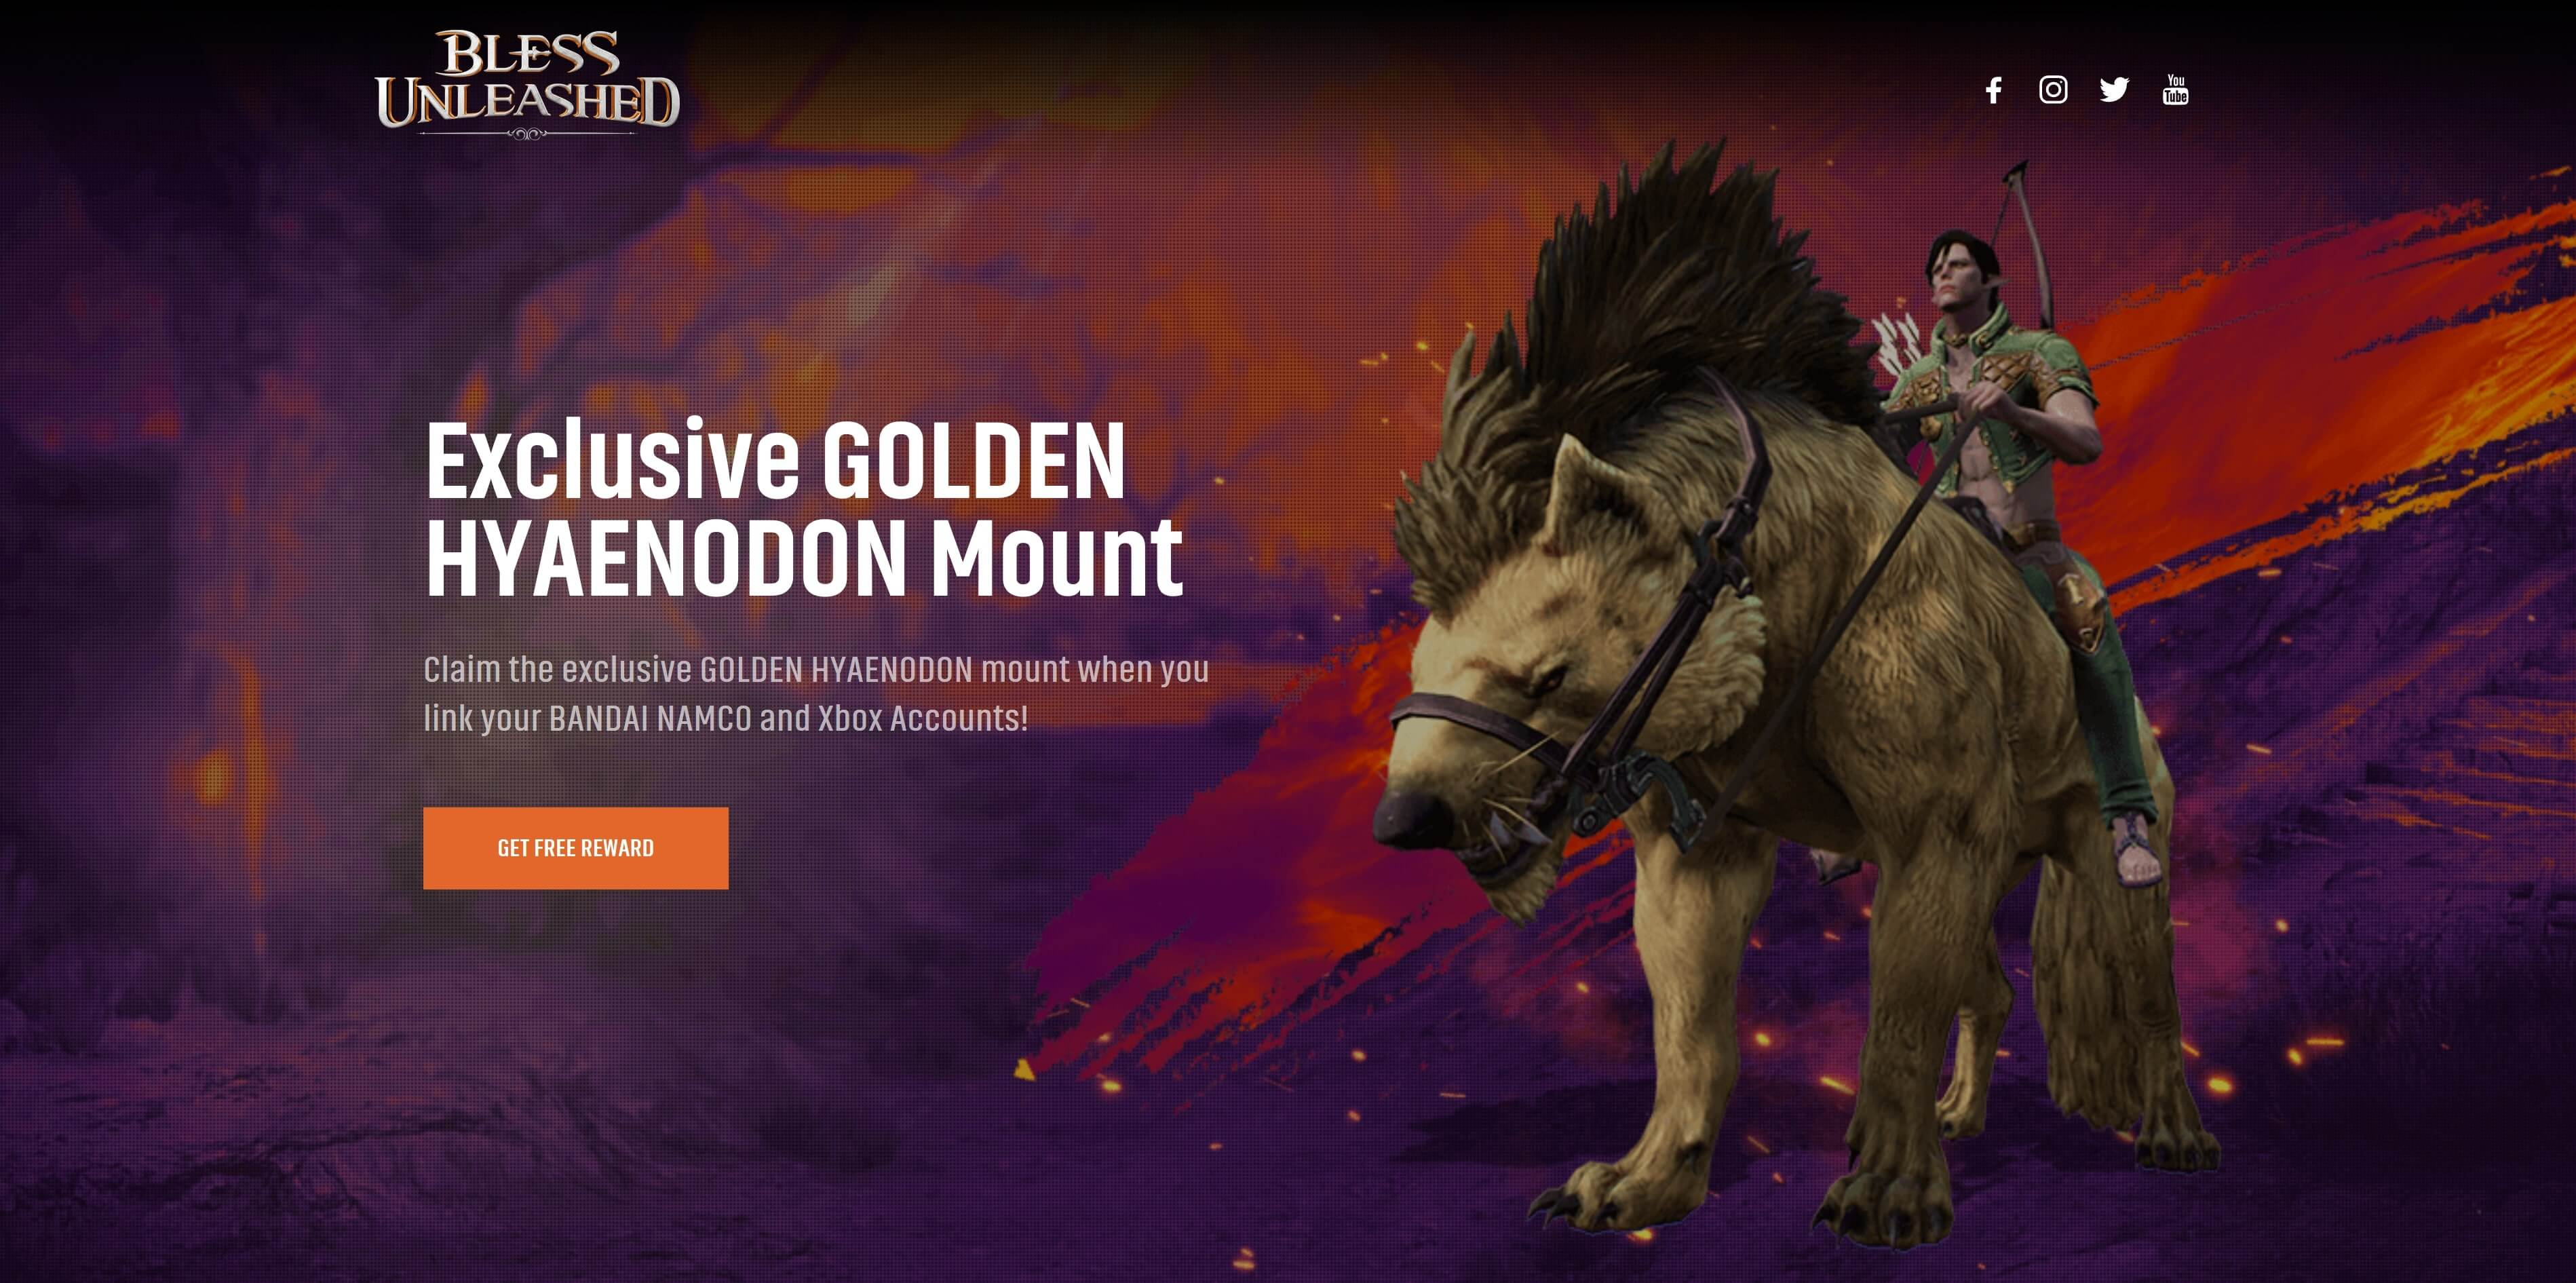 Get_Free_Reward_Golden_Hyaenodon_Mount_Page.jpg